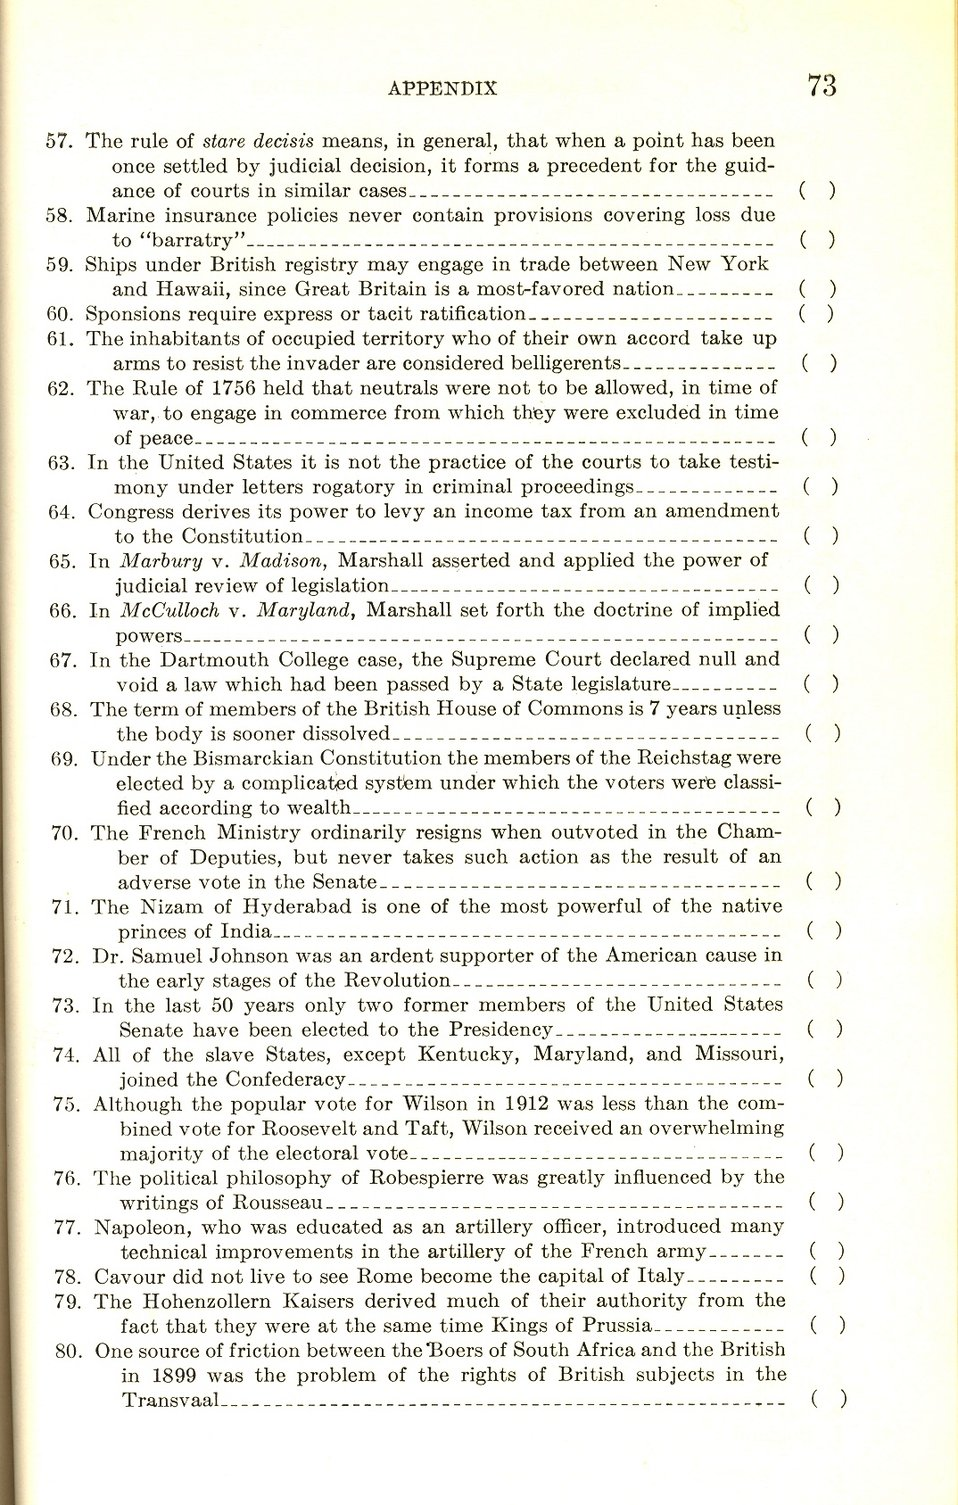 Test Your Knowledge With Sample Questions From a 1940 U.S. Foreign Service Exam Booklet